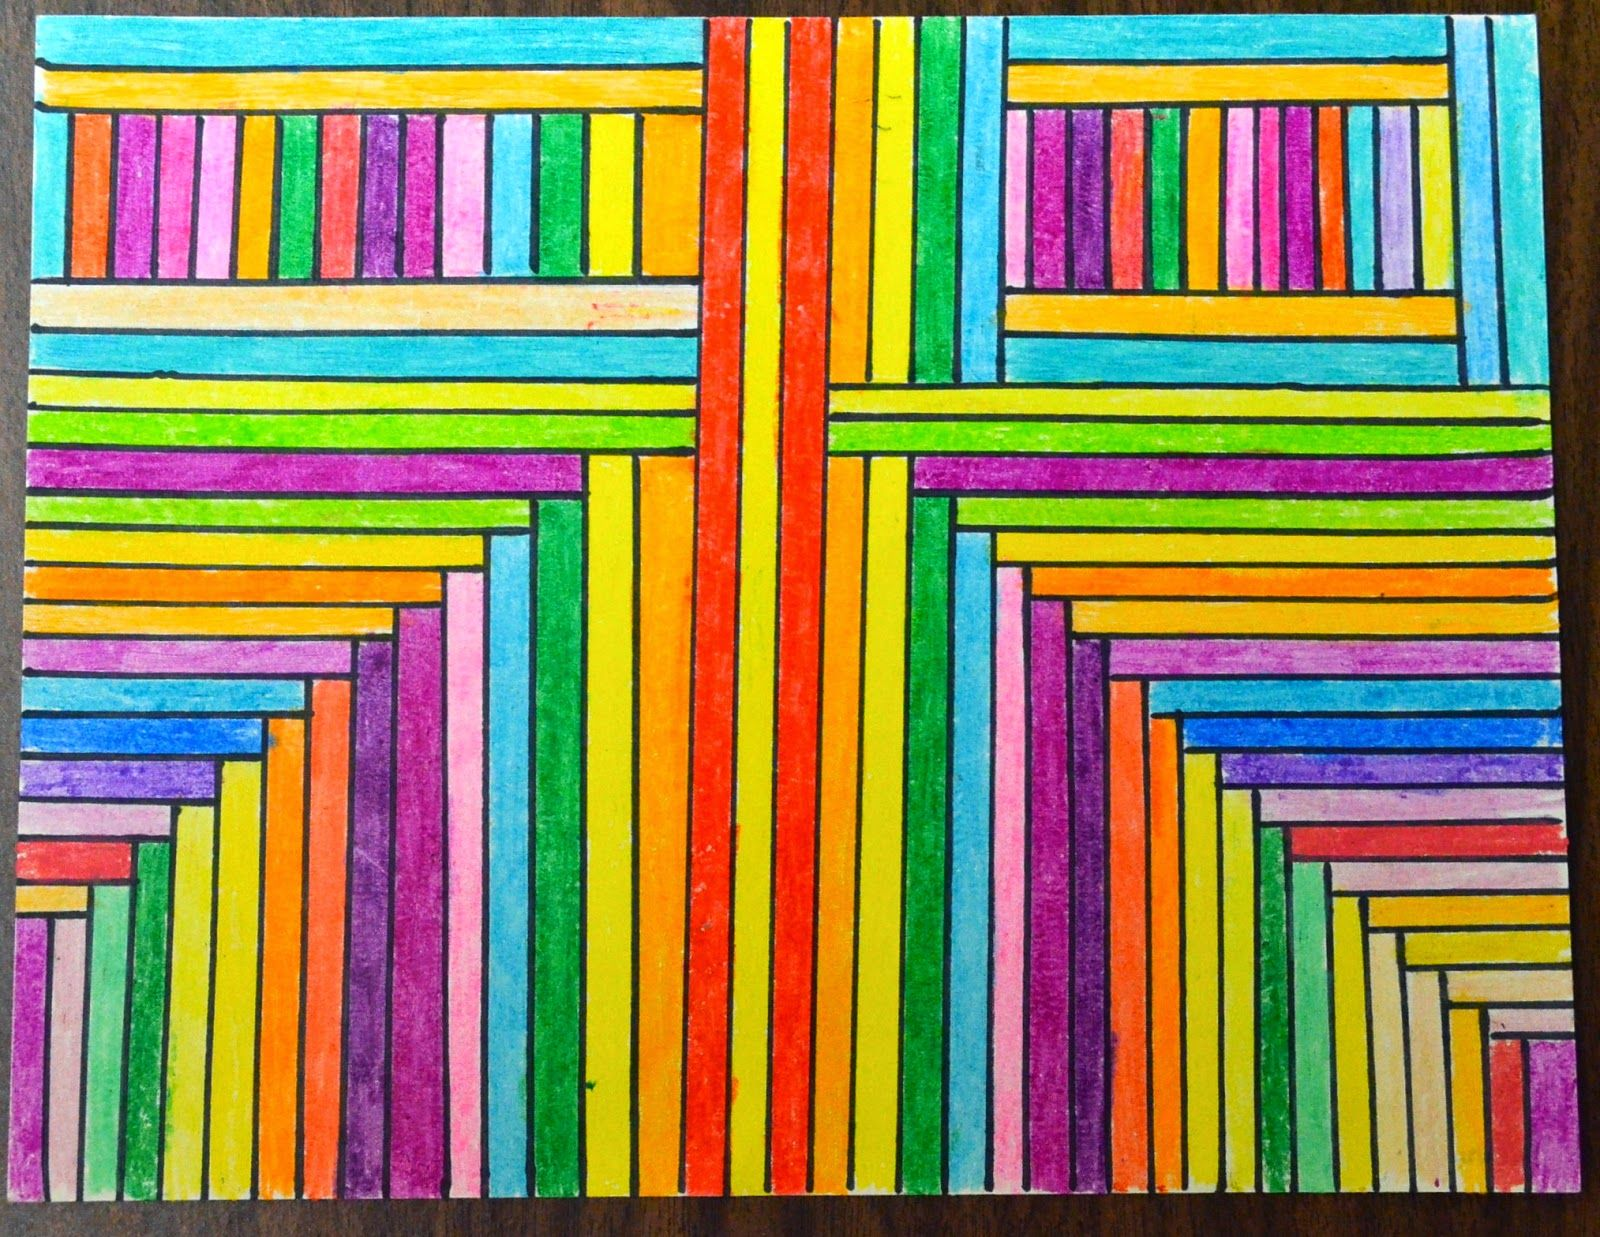 Parallel Amp Perpendicular Art Love2learn2day